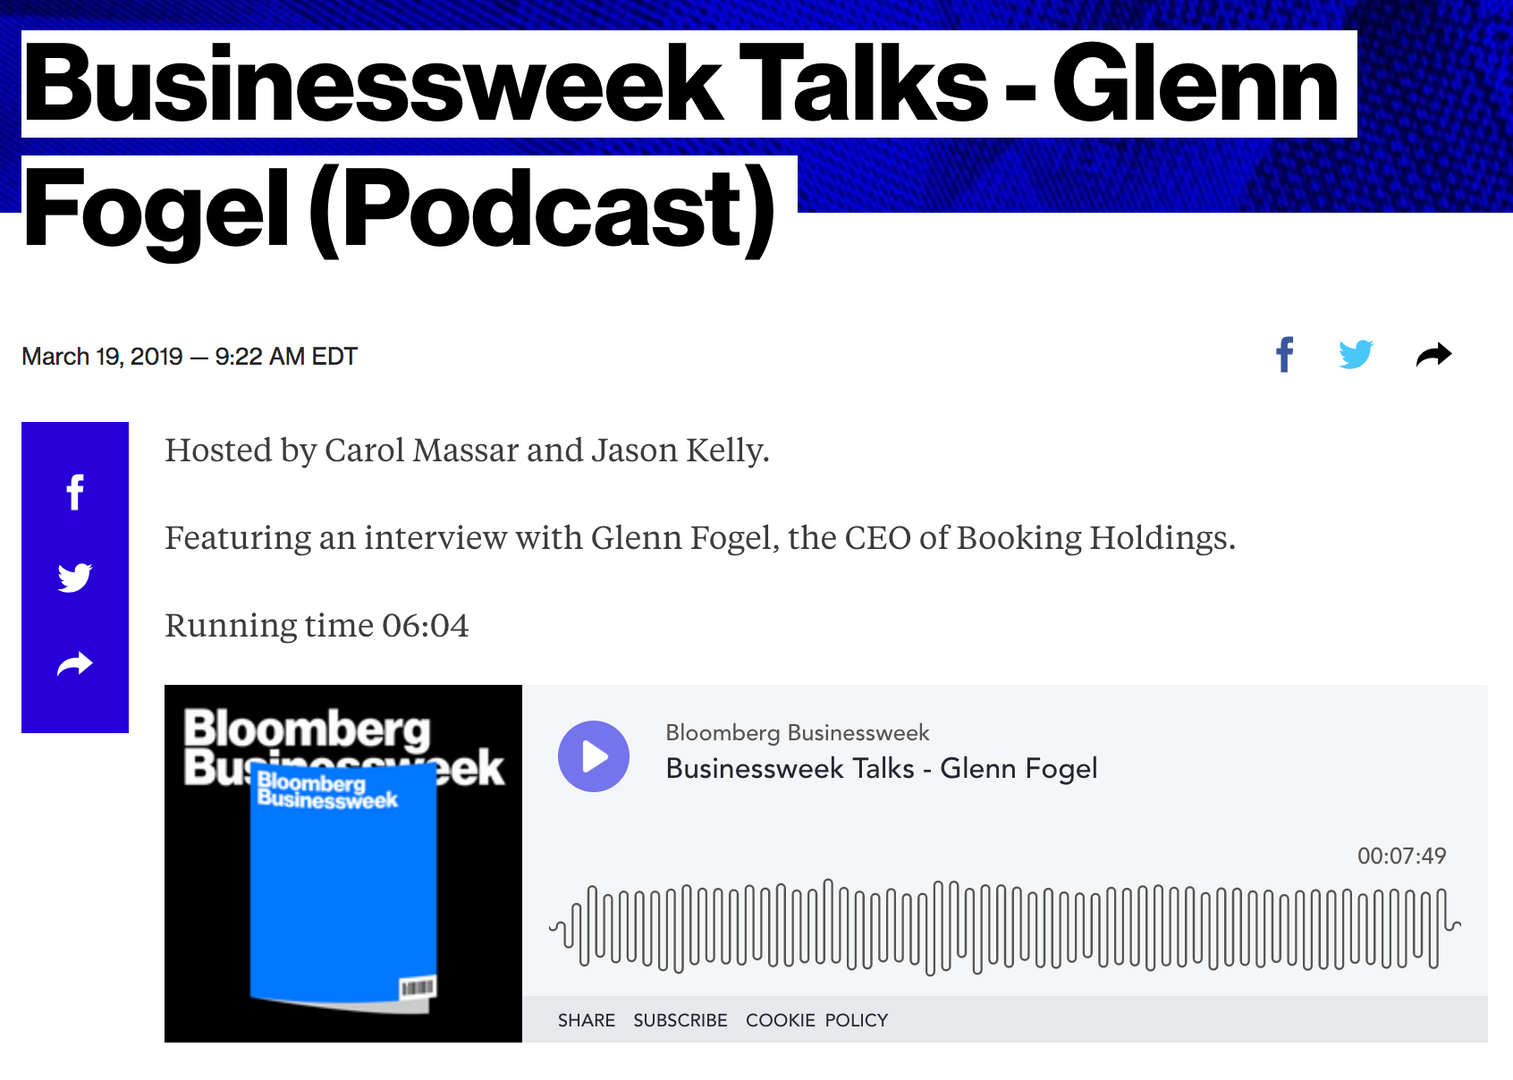 Businessweek Talks Podcast